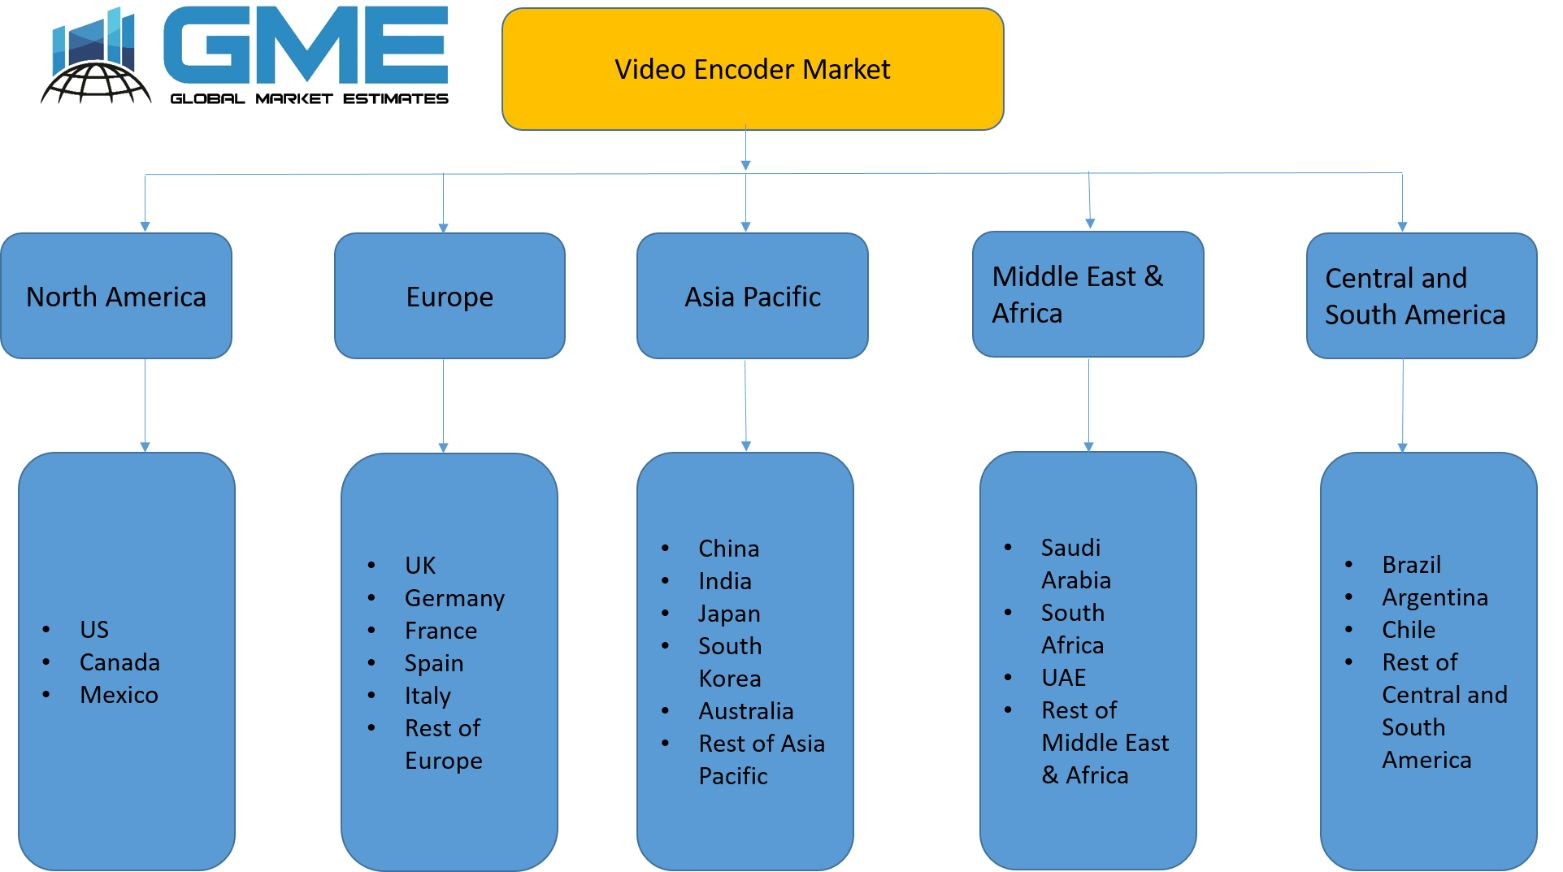 Video Encoder Market - Regional Analysis